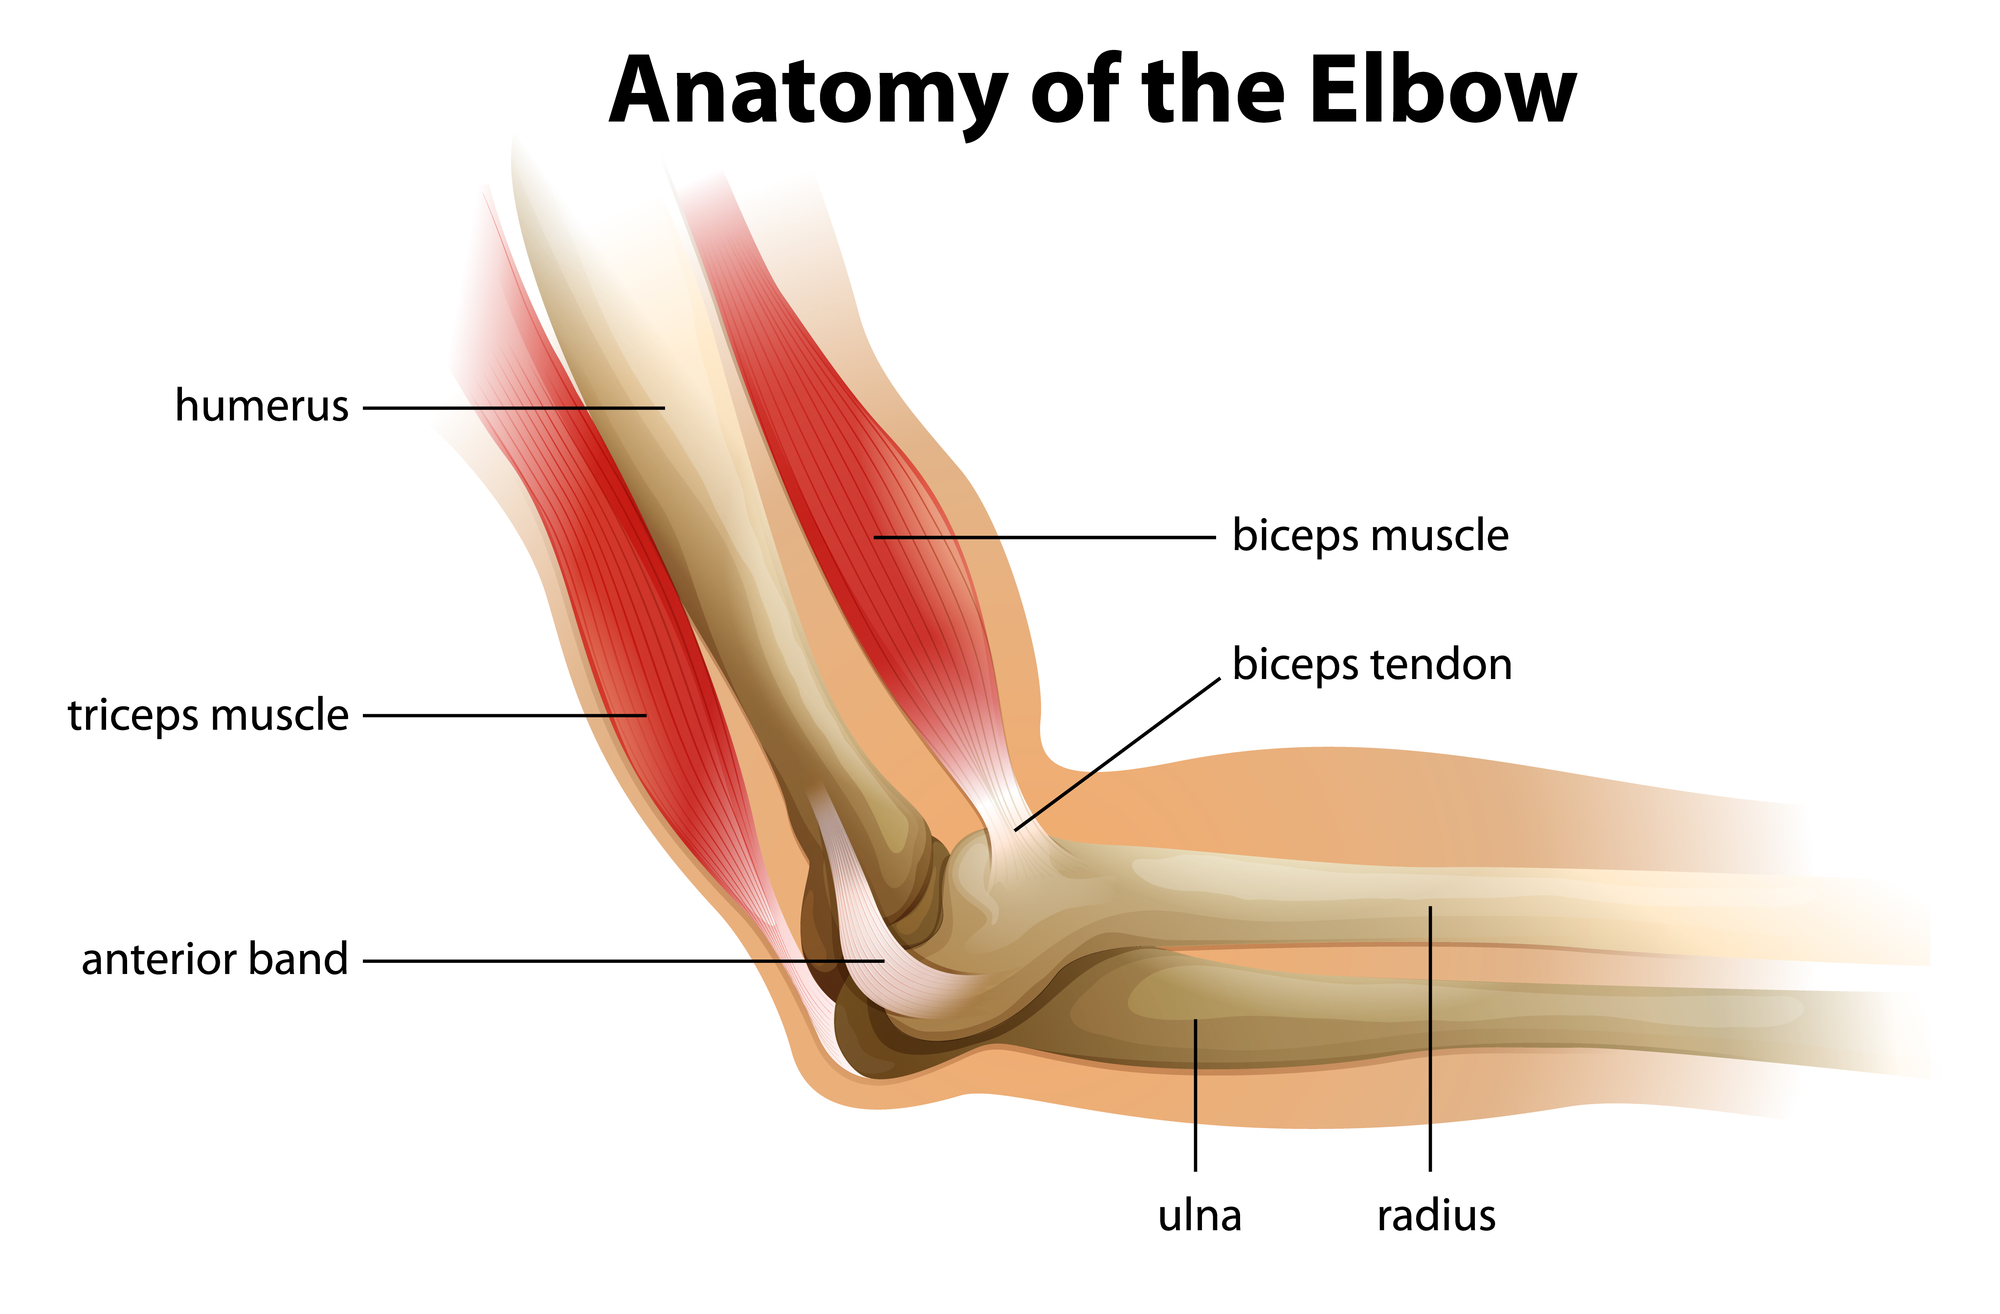 Illustration showing the anatomy of the human elbow.